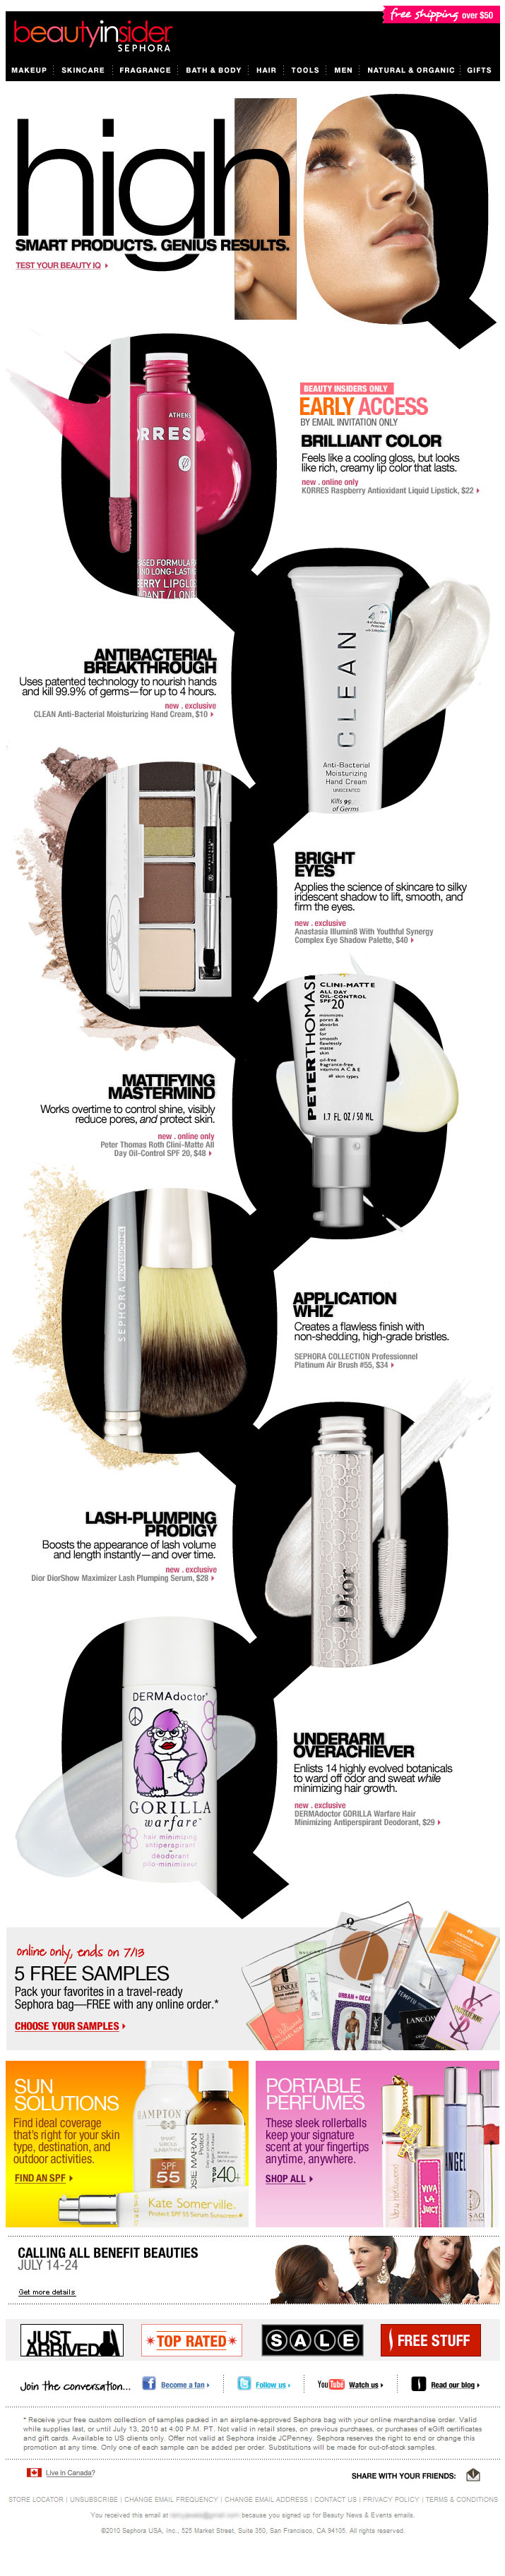 Sephora Beauty ecommerce newsletter - email design inspiration #email #design #newsletter #emaildesign #newsletterdesign #inspiration #fashion #sephora